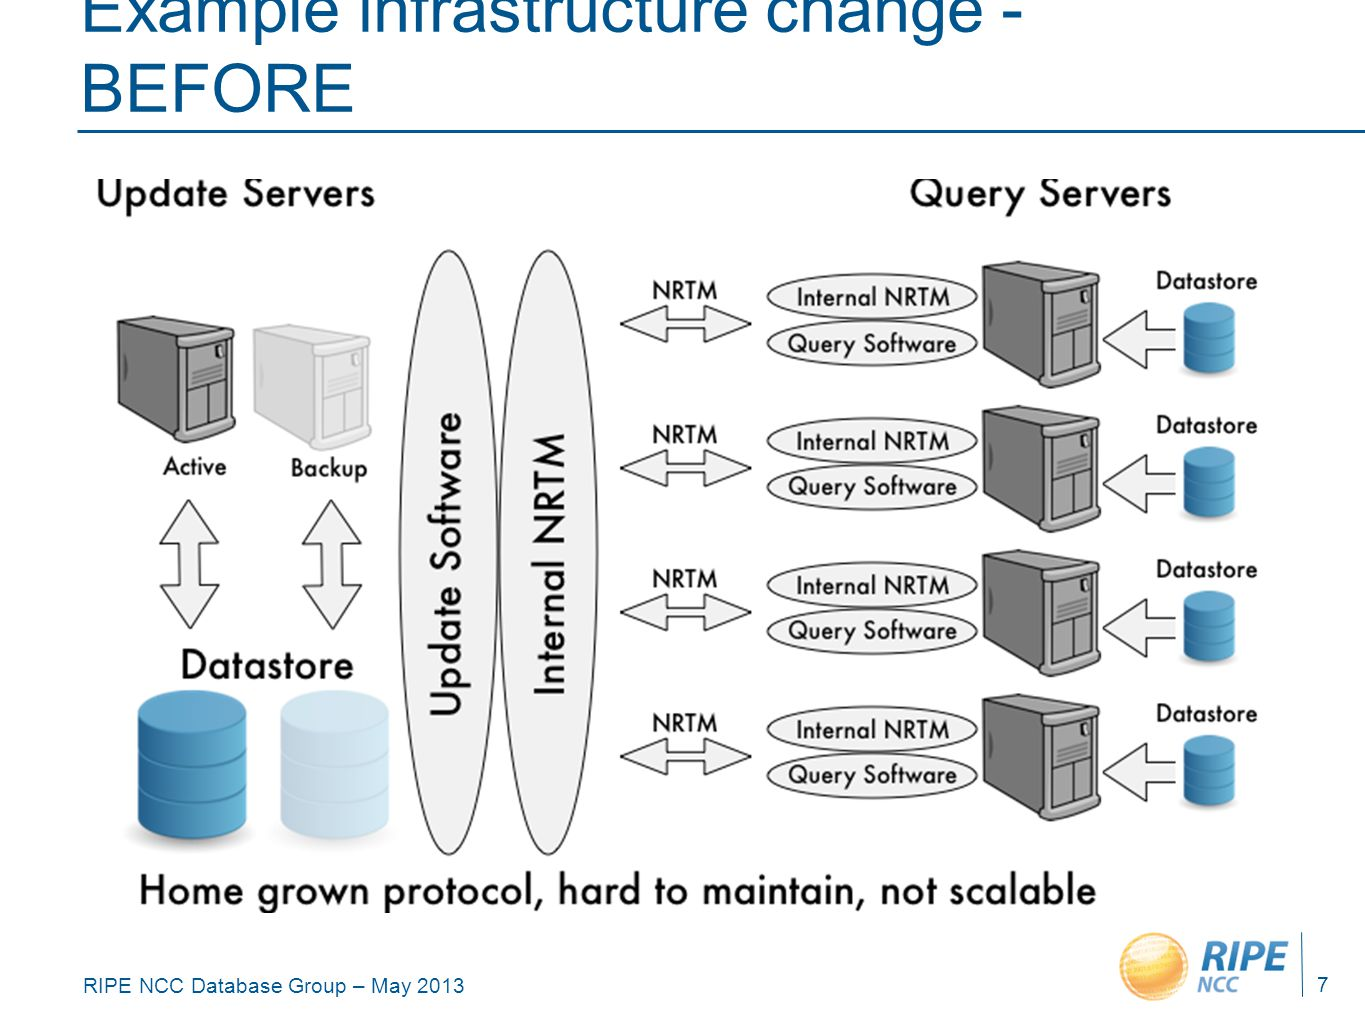 RIPE NCC Database Group – May 2013 Example infrastructure change - BEFORE 7